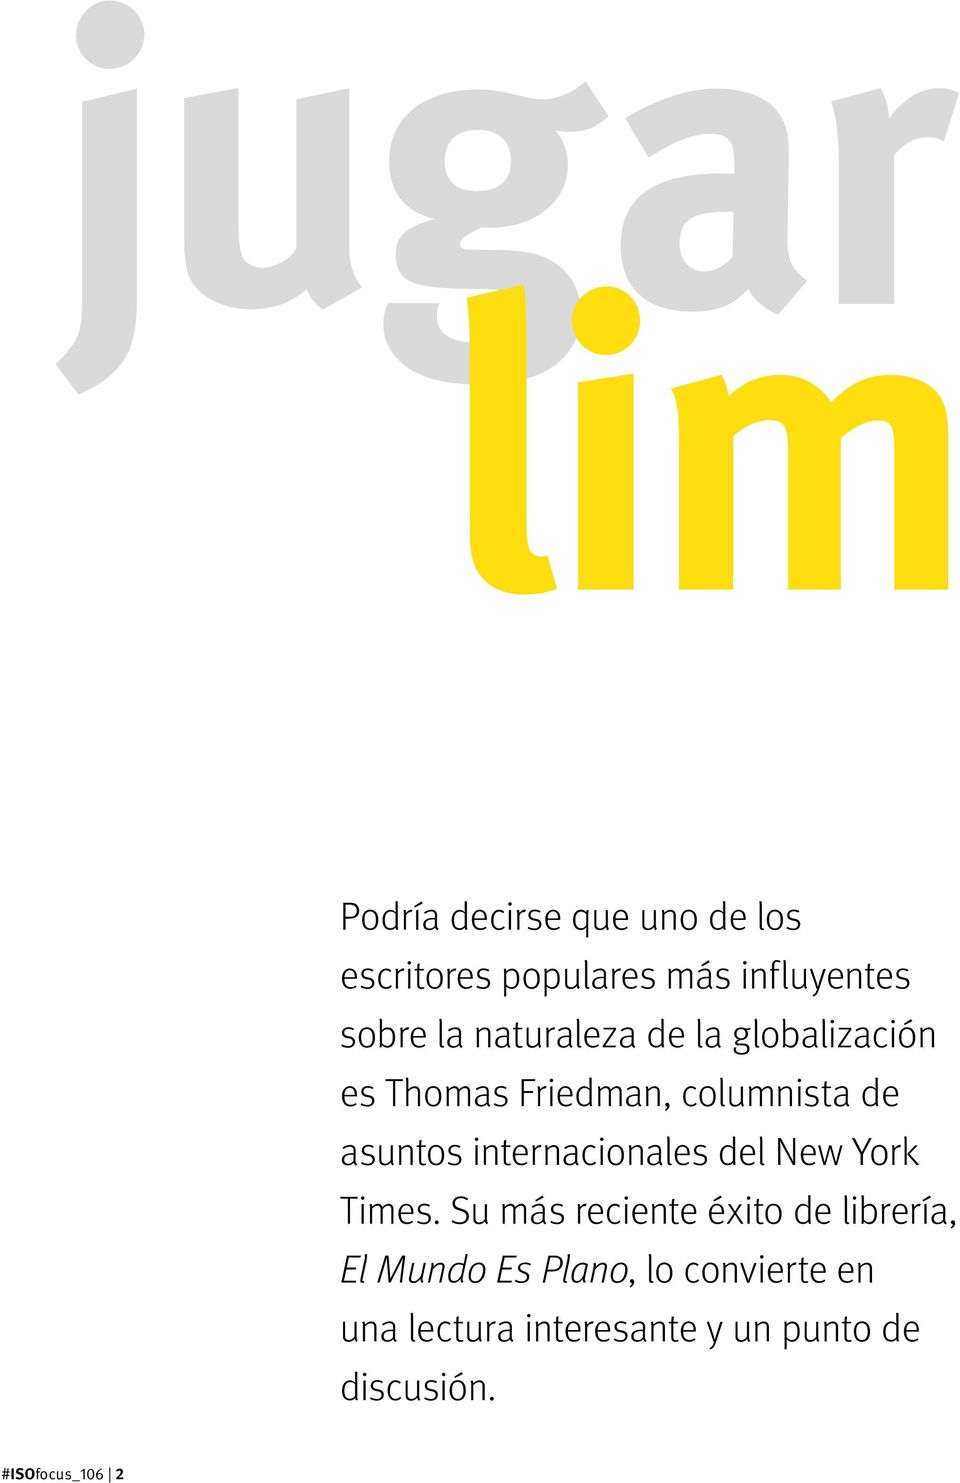 internacionales del New York Times.